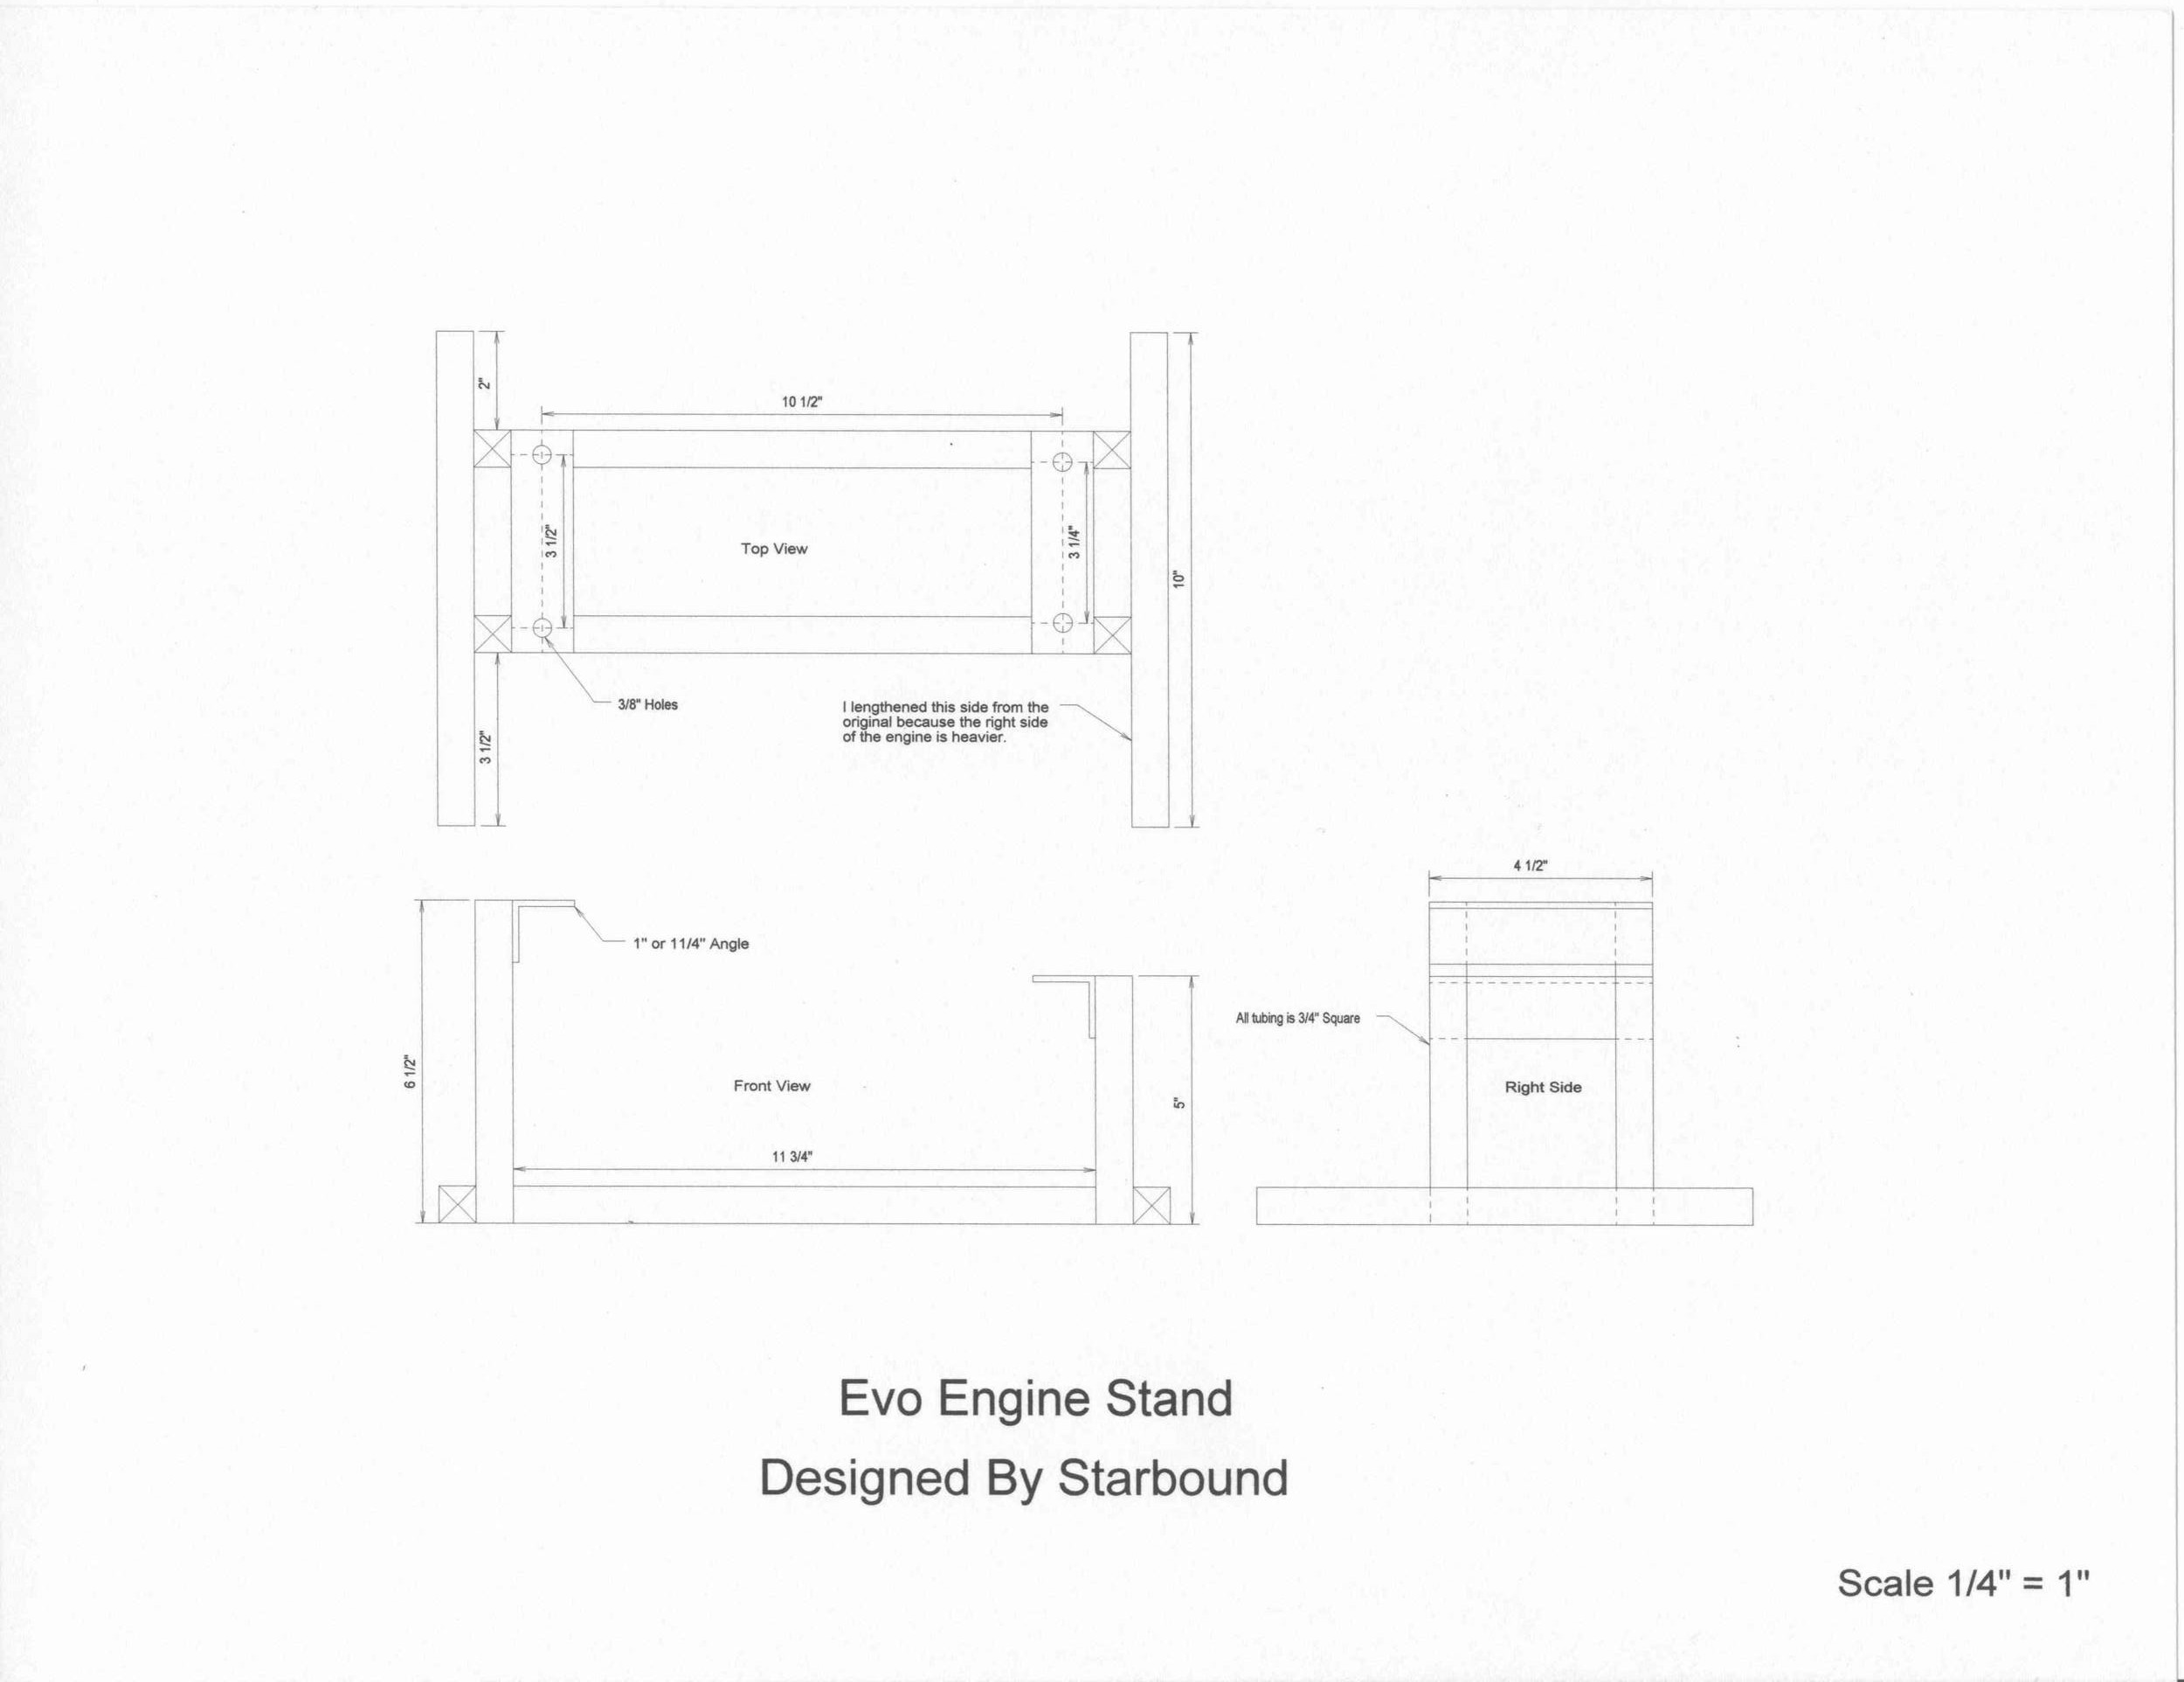 small resolution of 80 harley evolution engine diagram wiring diagramplans for a harley motor stand u2013 mustaribrandharley